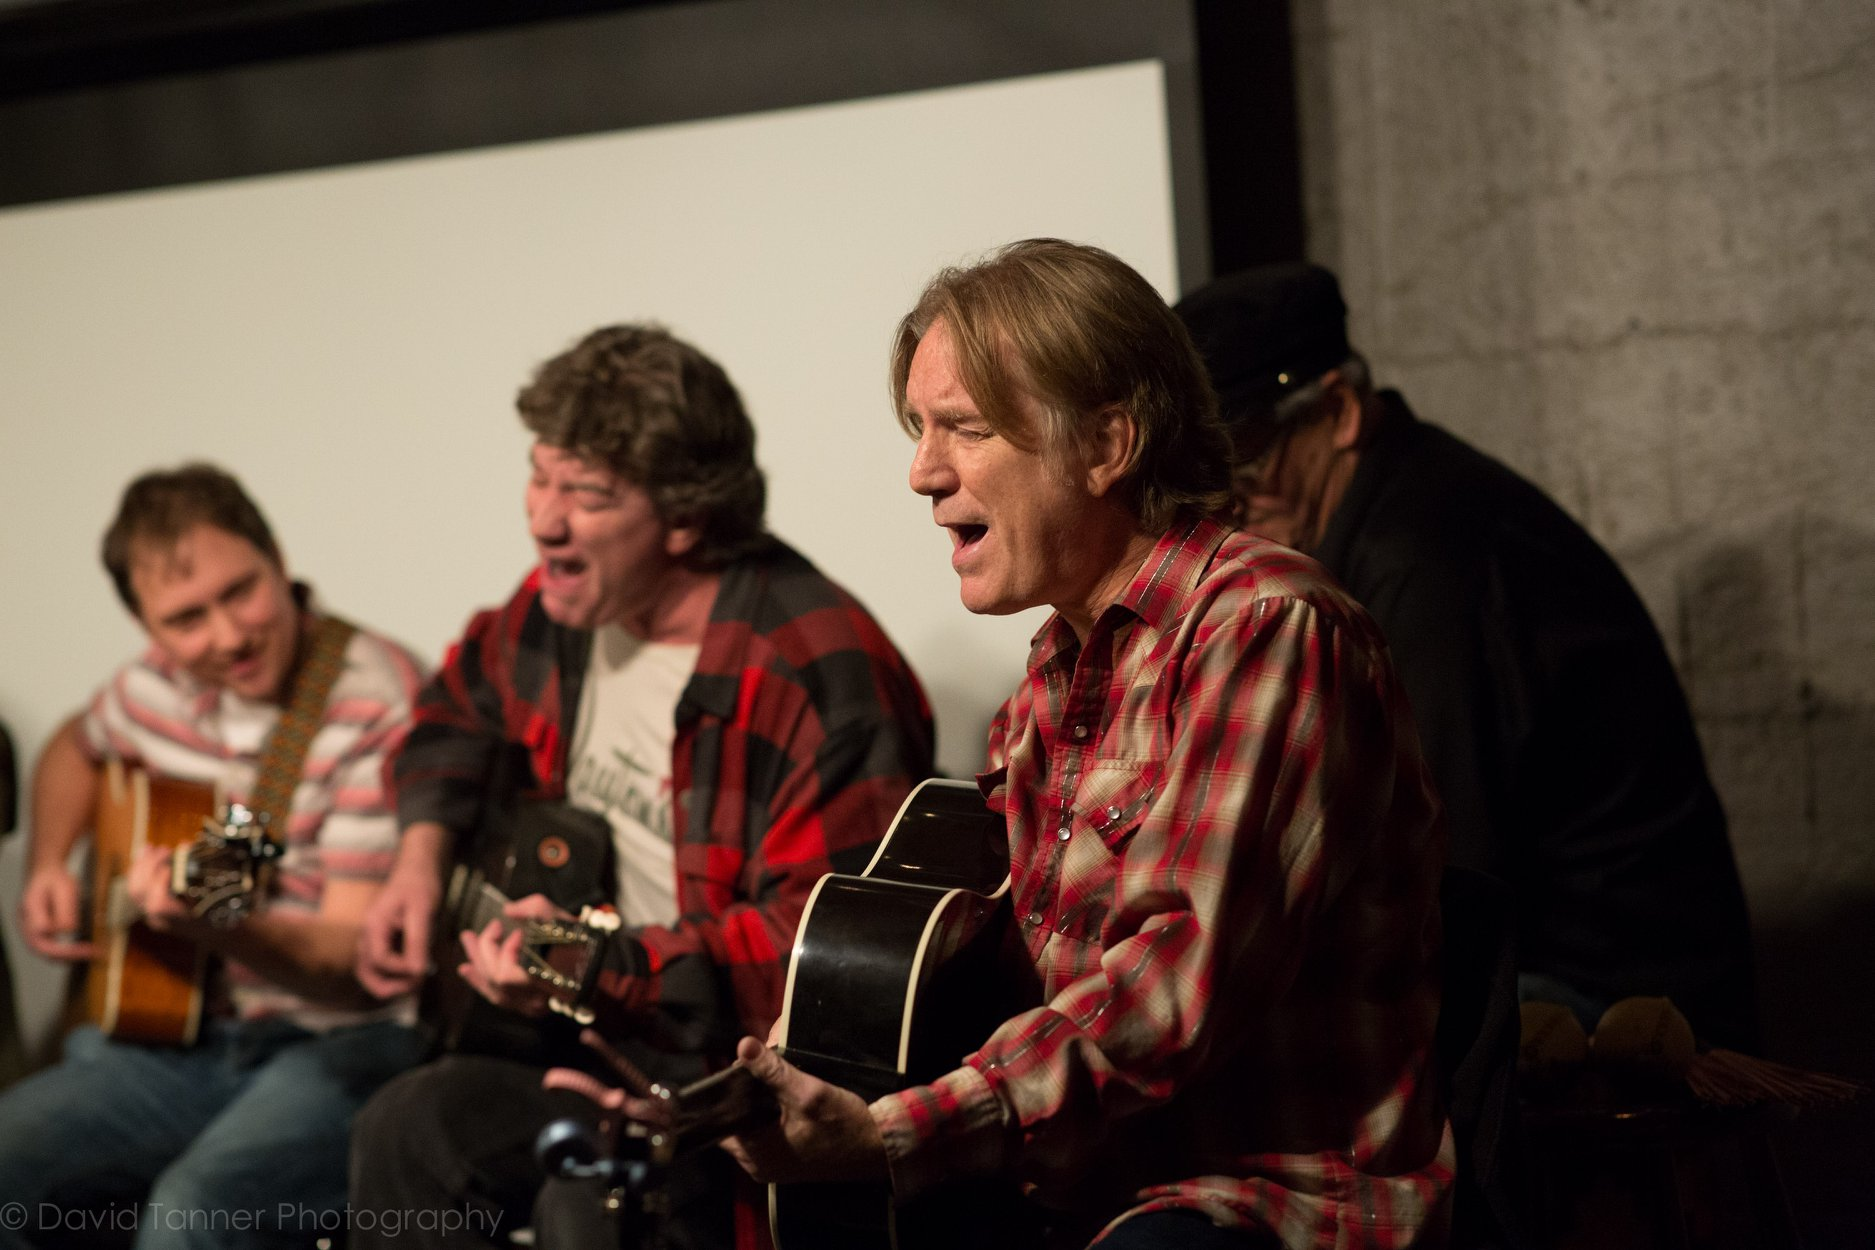 Mad Ripple Hootenanny - Friday, February 21 - The Hook and Ladder Mission Room